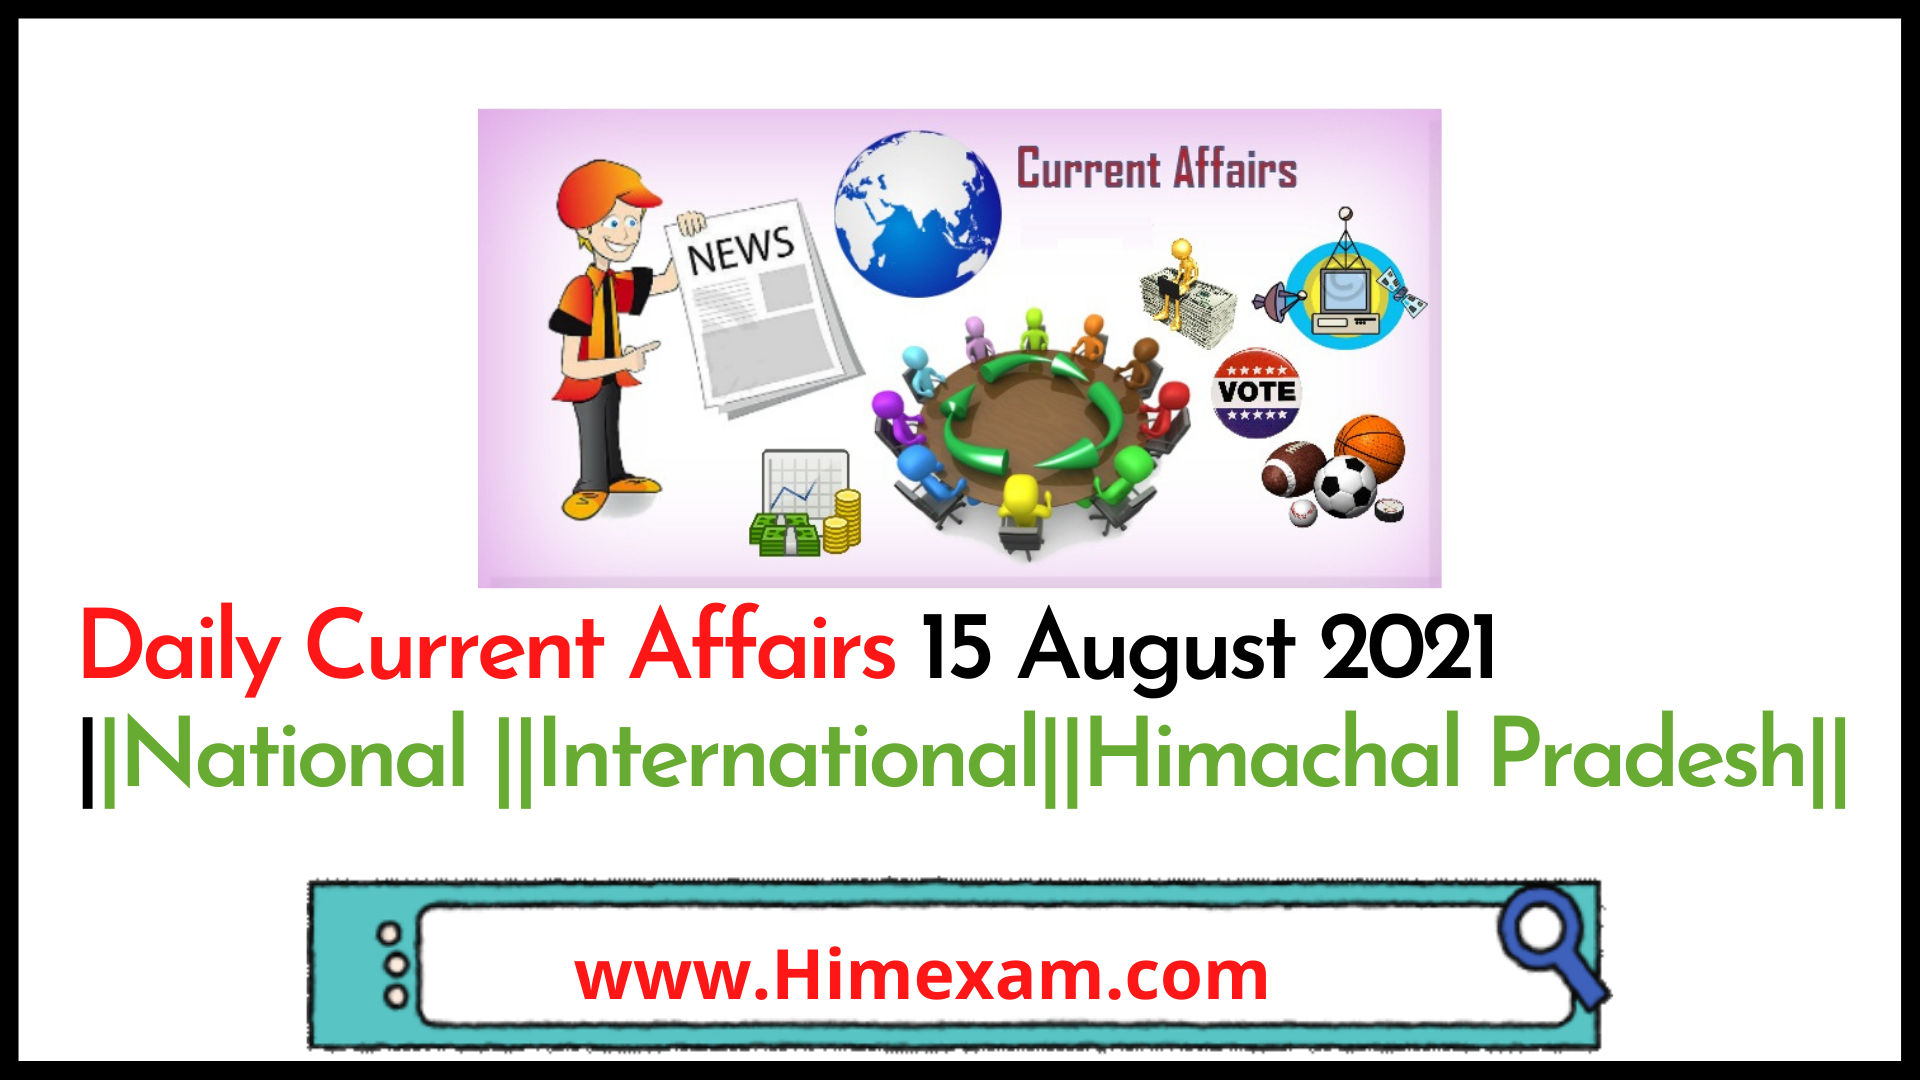 Daily Current Affairs 15 August 2021